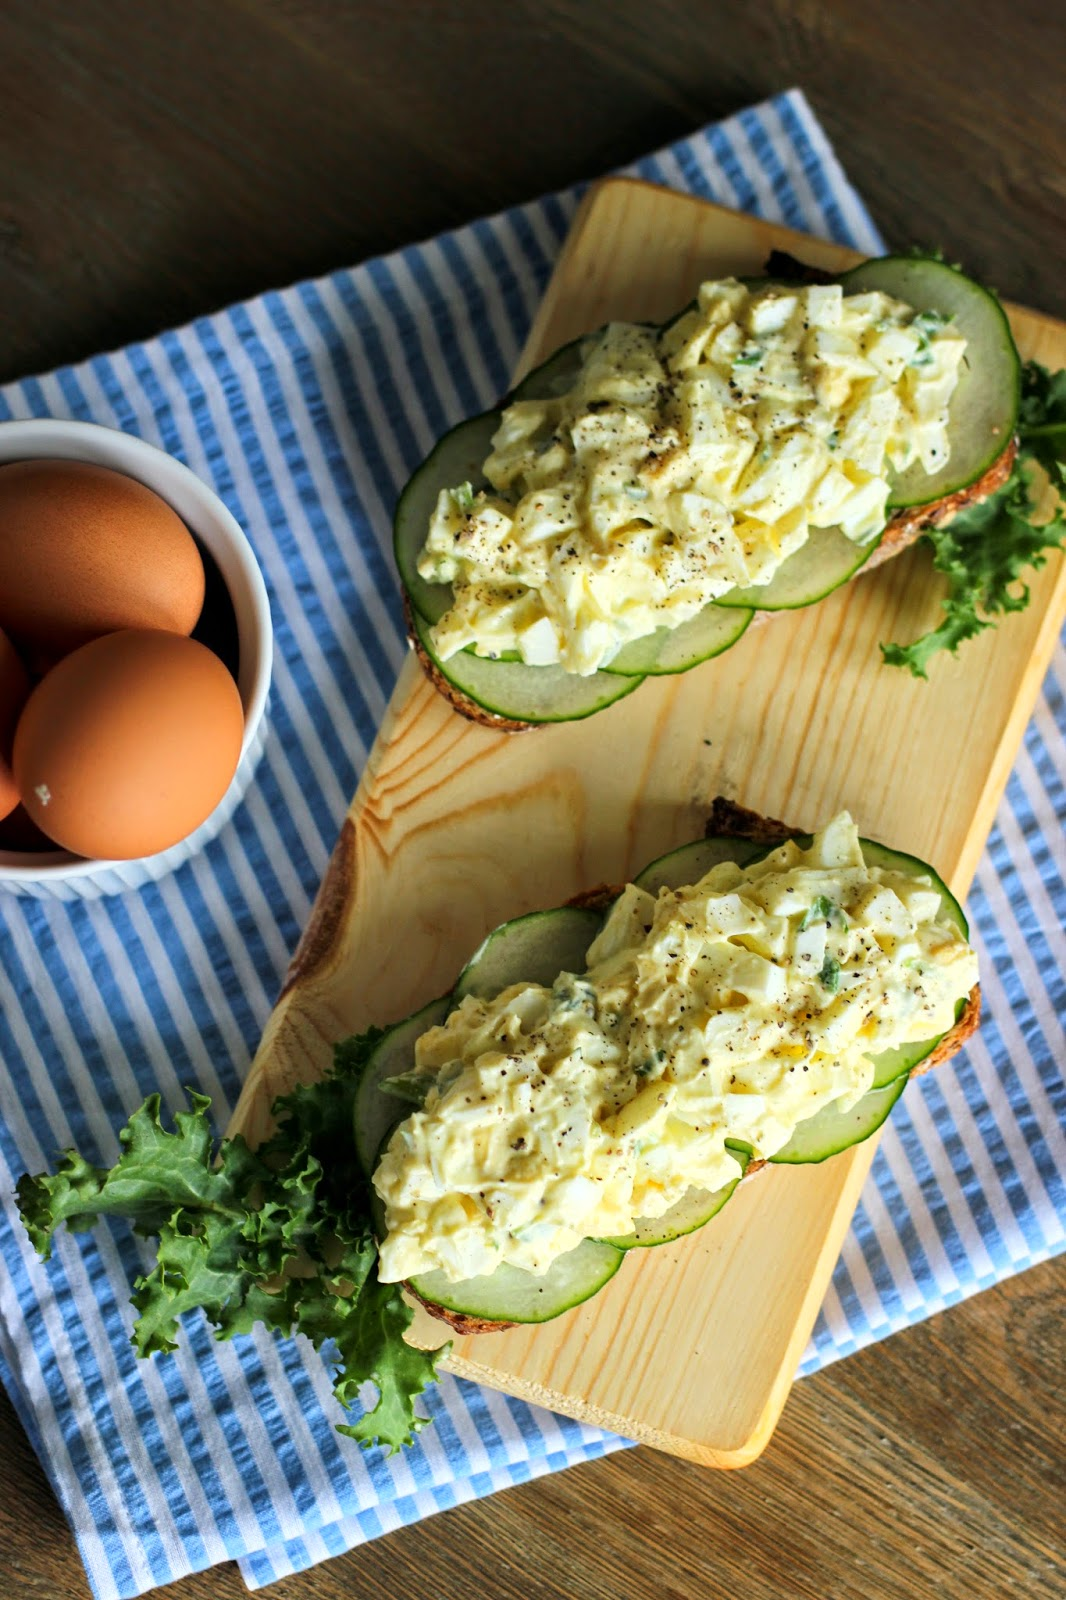 The owl with the goblet simply perfect egg salad simply perfect egg salad so sorry my posts have been fairly scarce lately that trend will probably continue for a few weeks because forumfinder Image collections